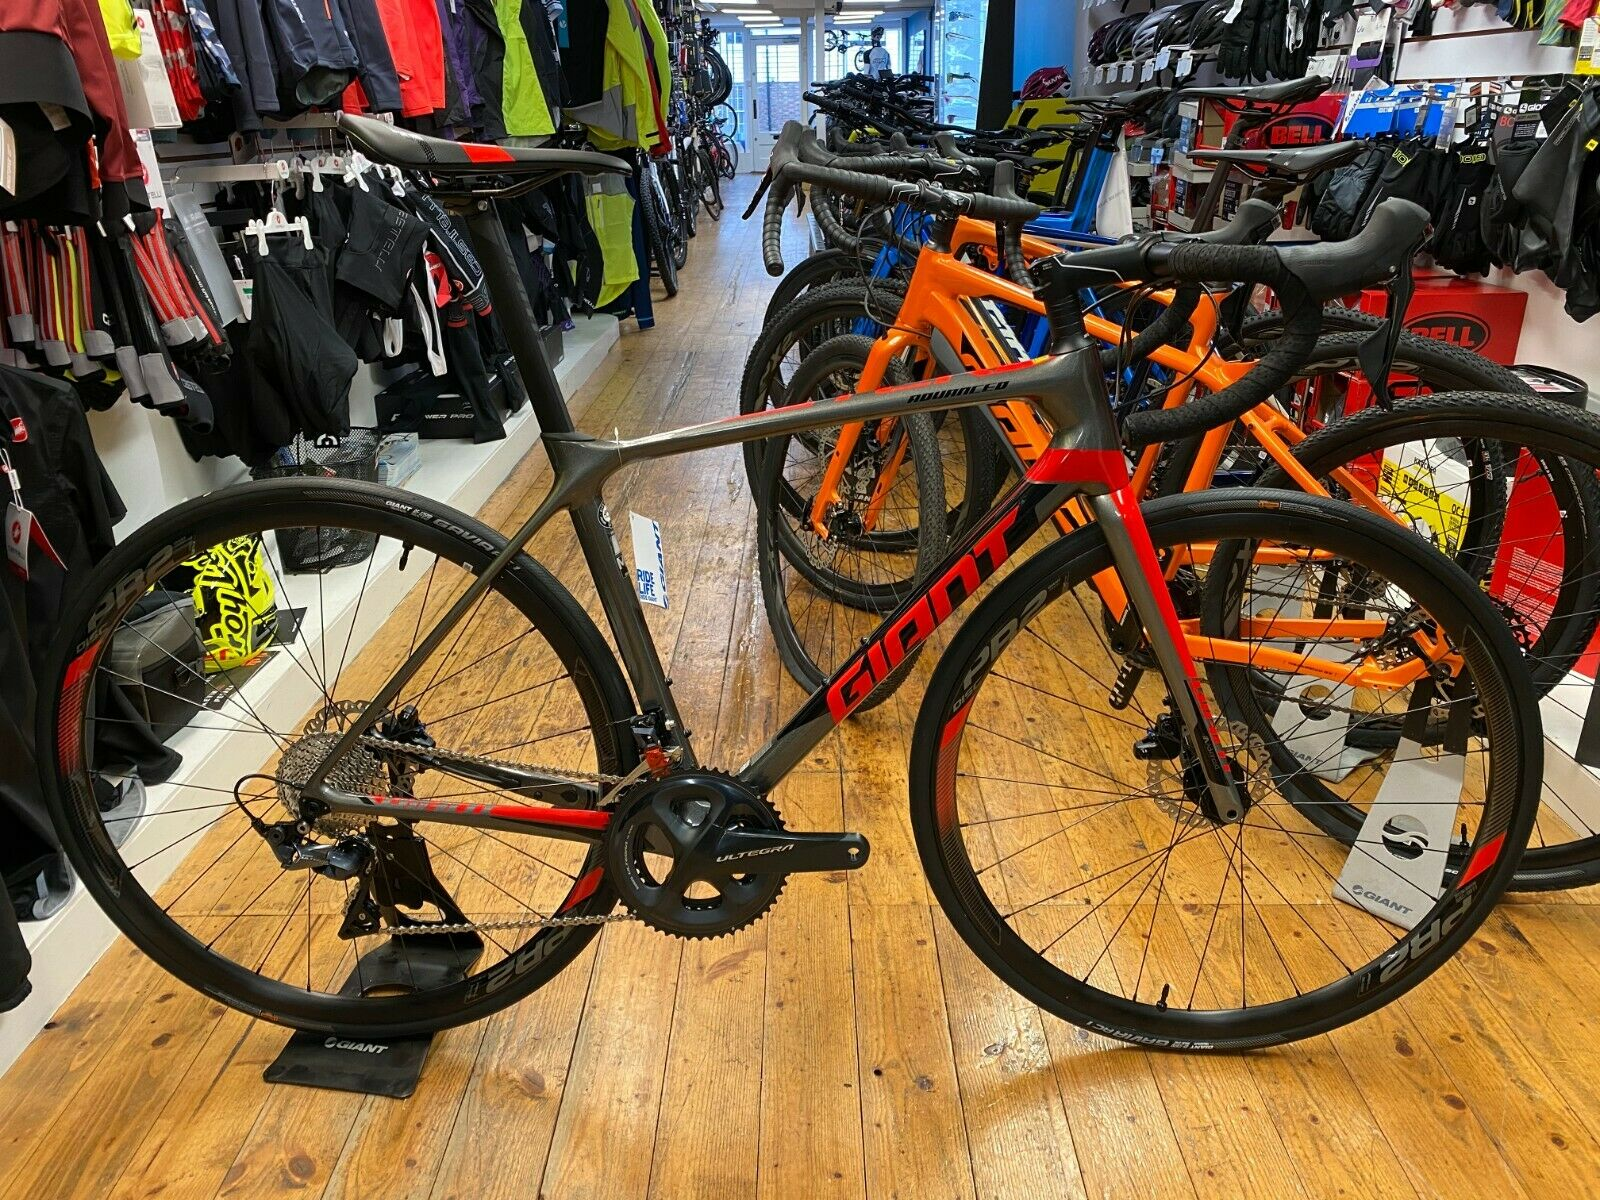 eBay Bikes - Giant, Specialized, Trek | Cycling deals from Dealclincher